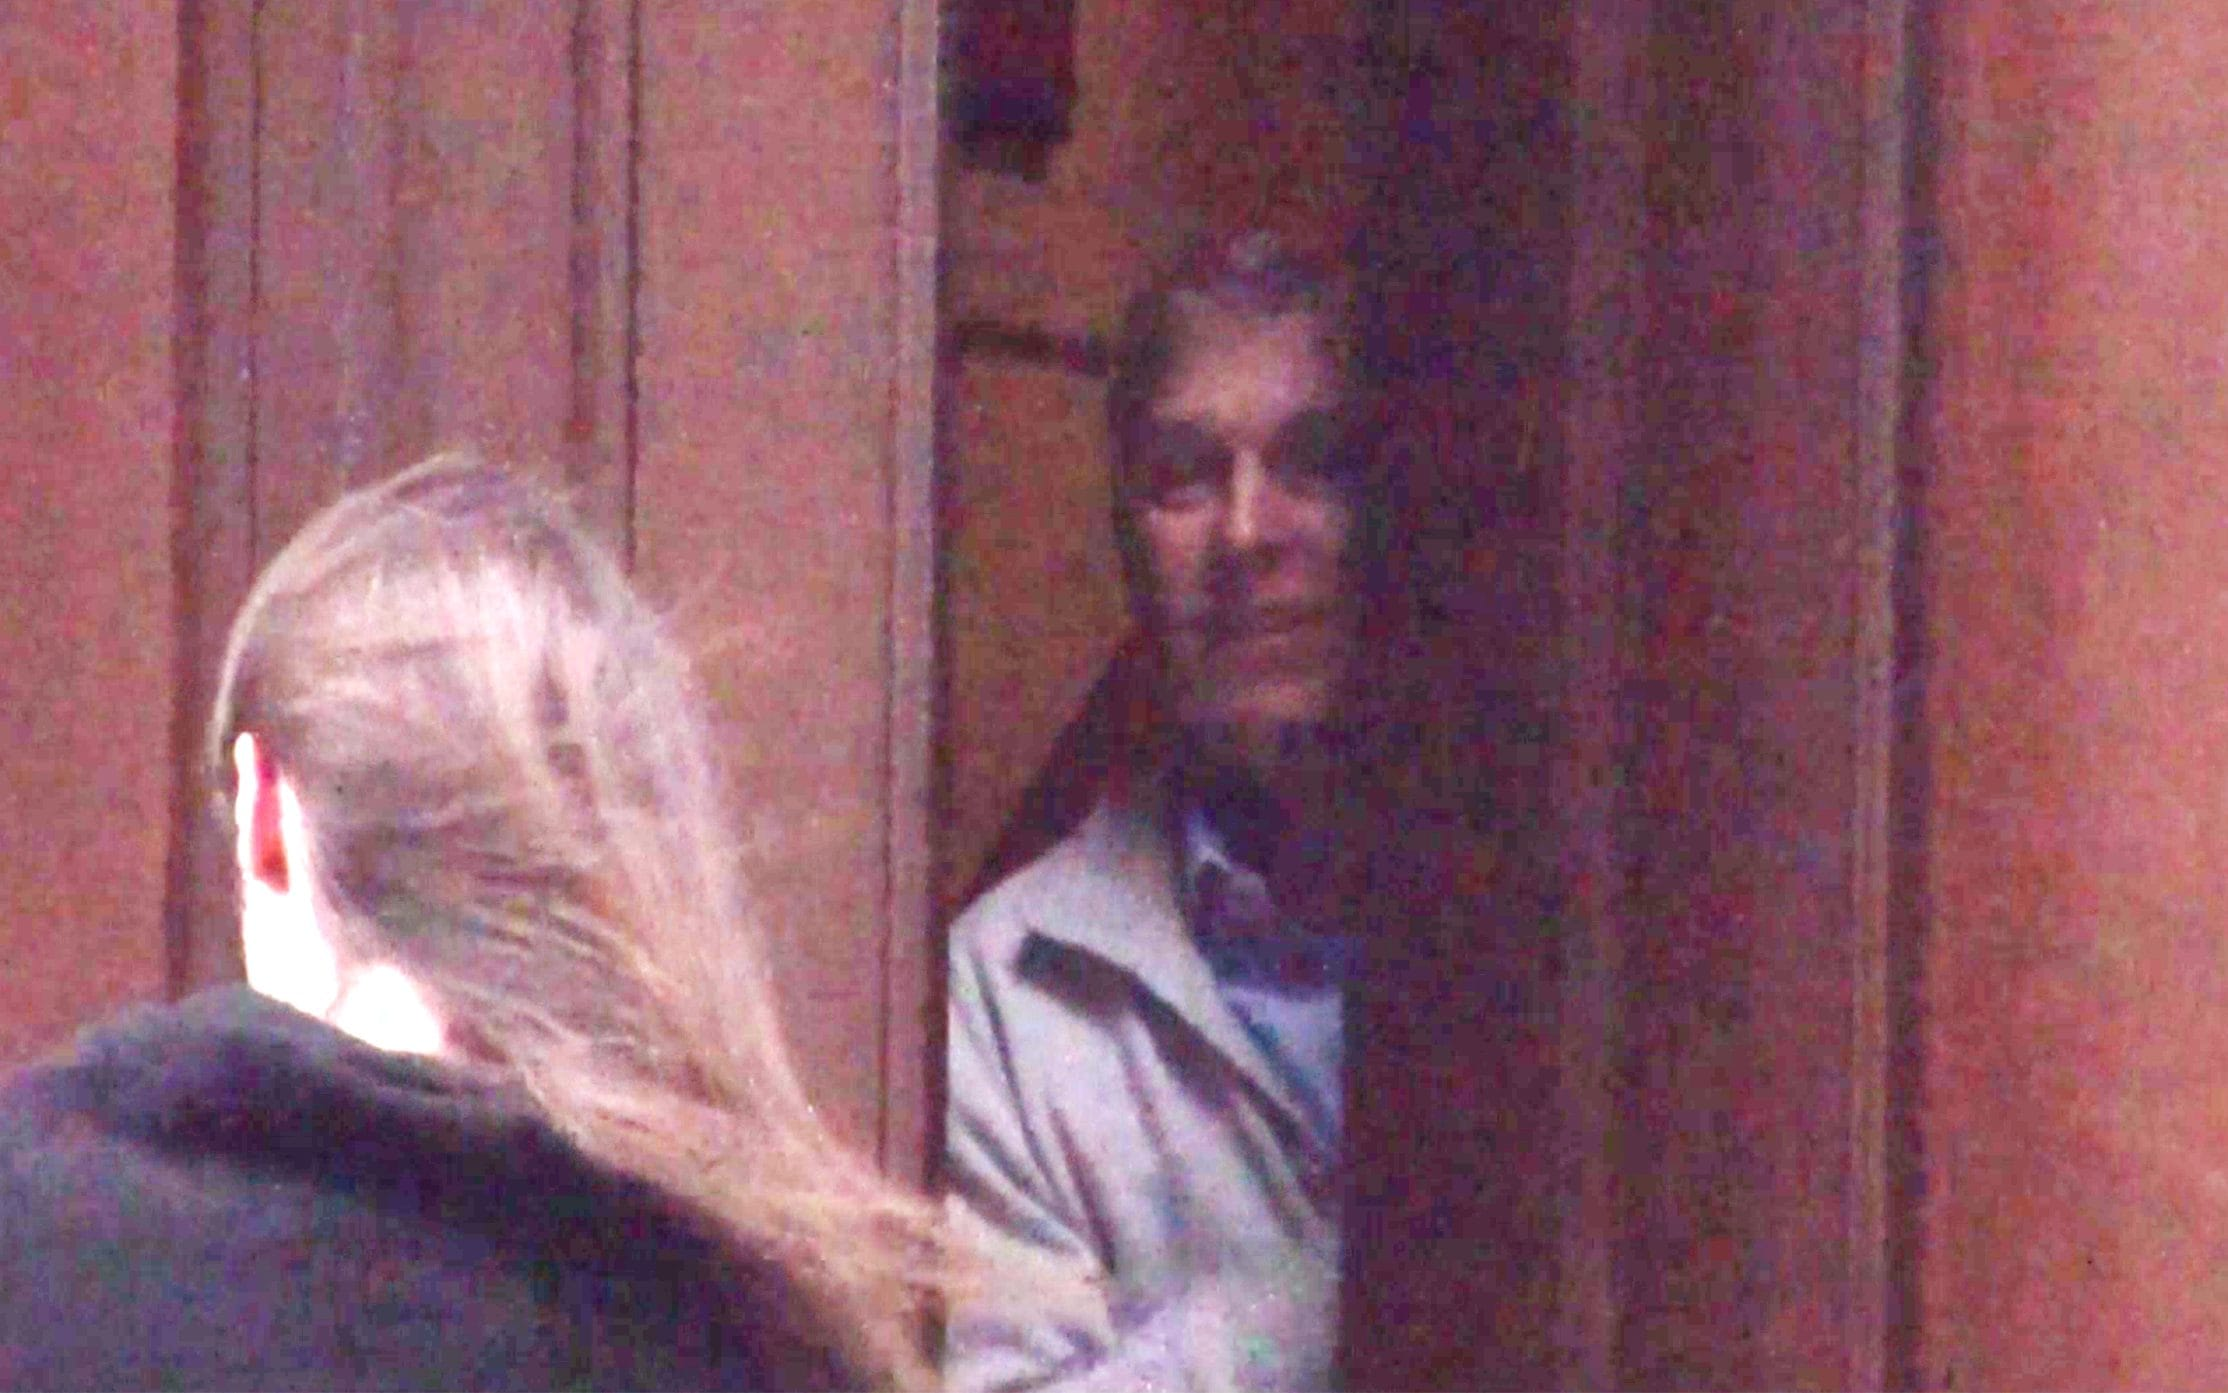 Duke of York pictured inside mansion of convicted paedophile Jeffrey Epstein